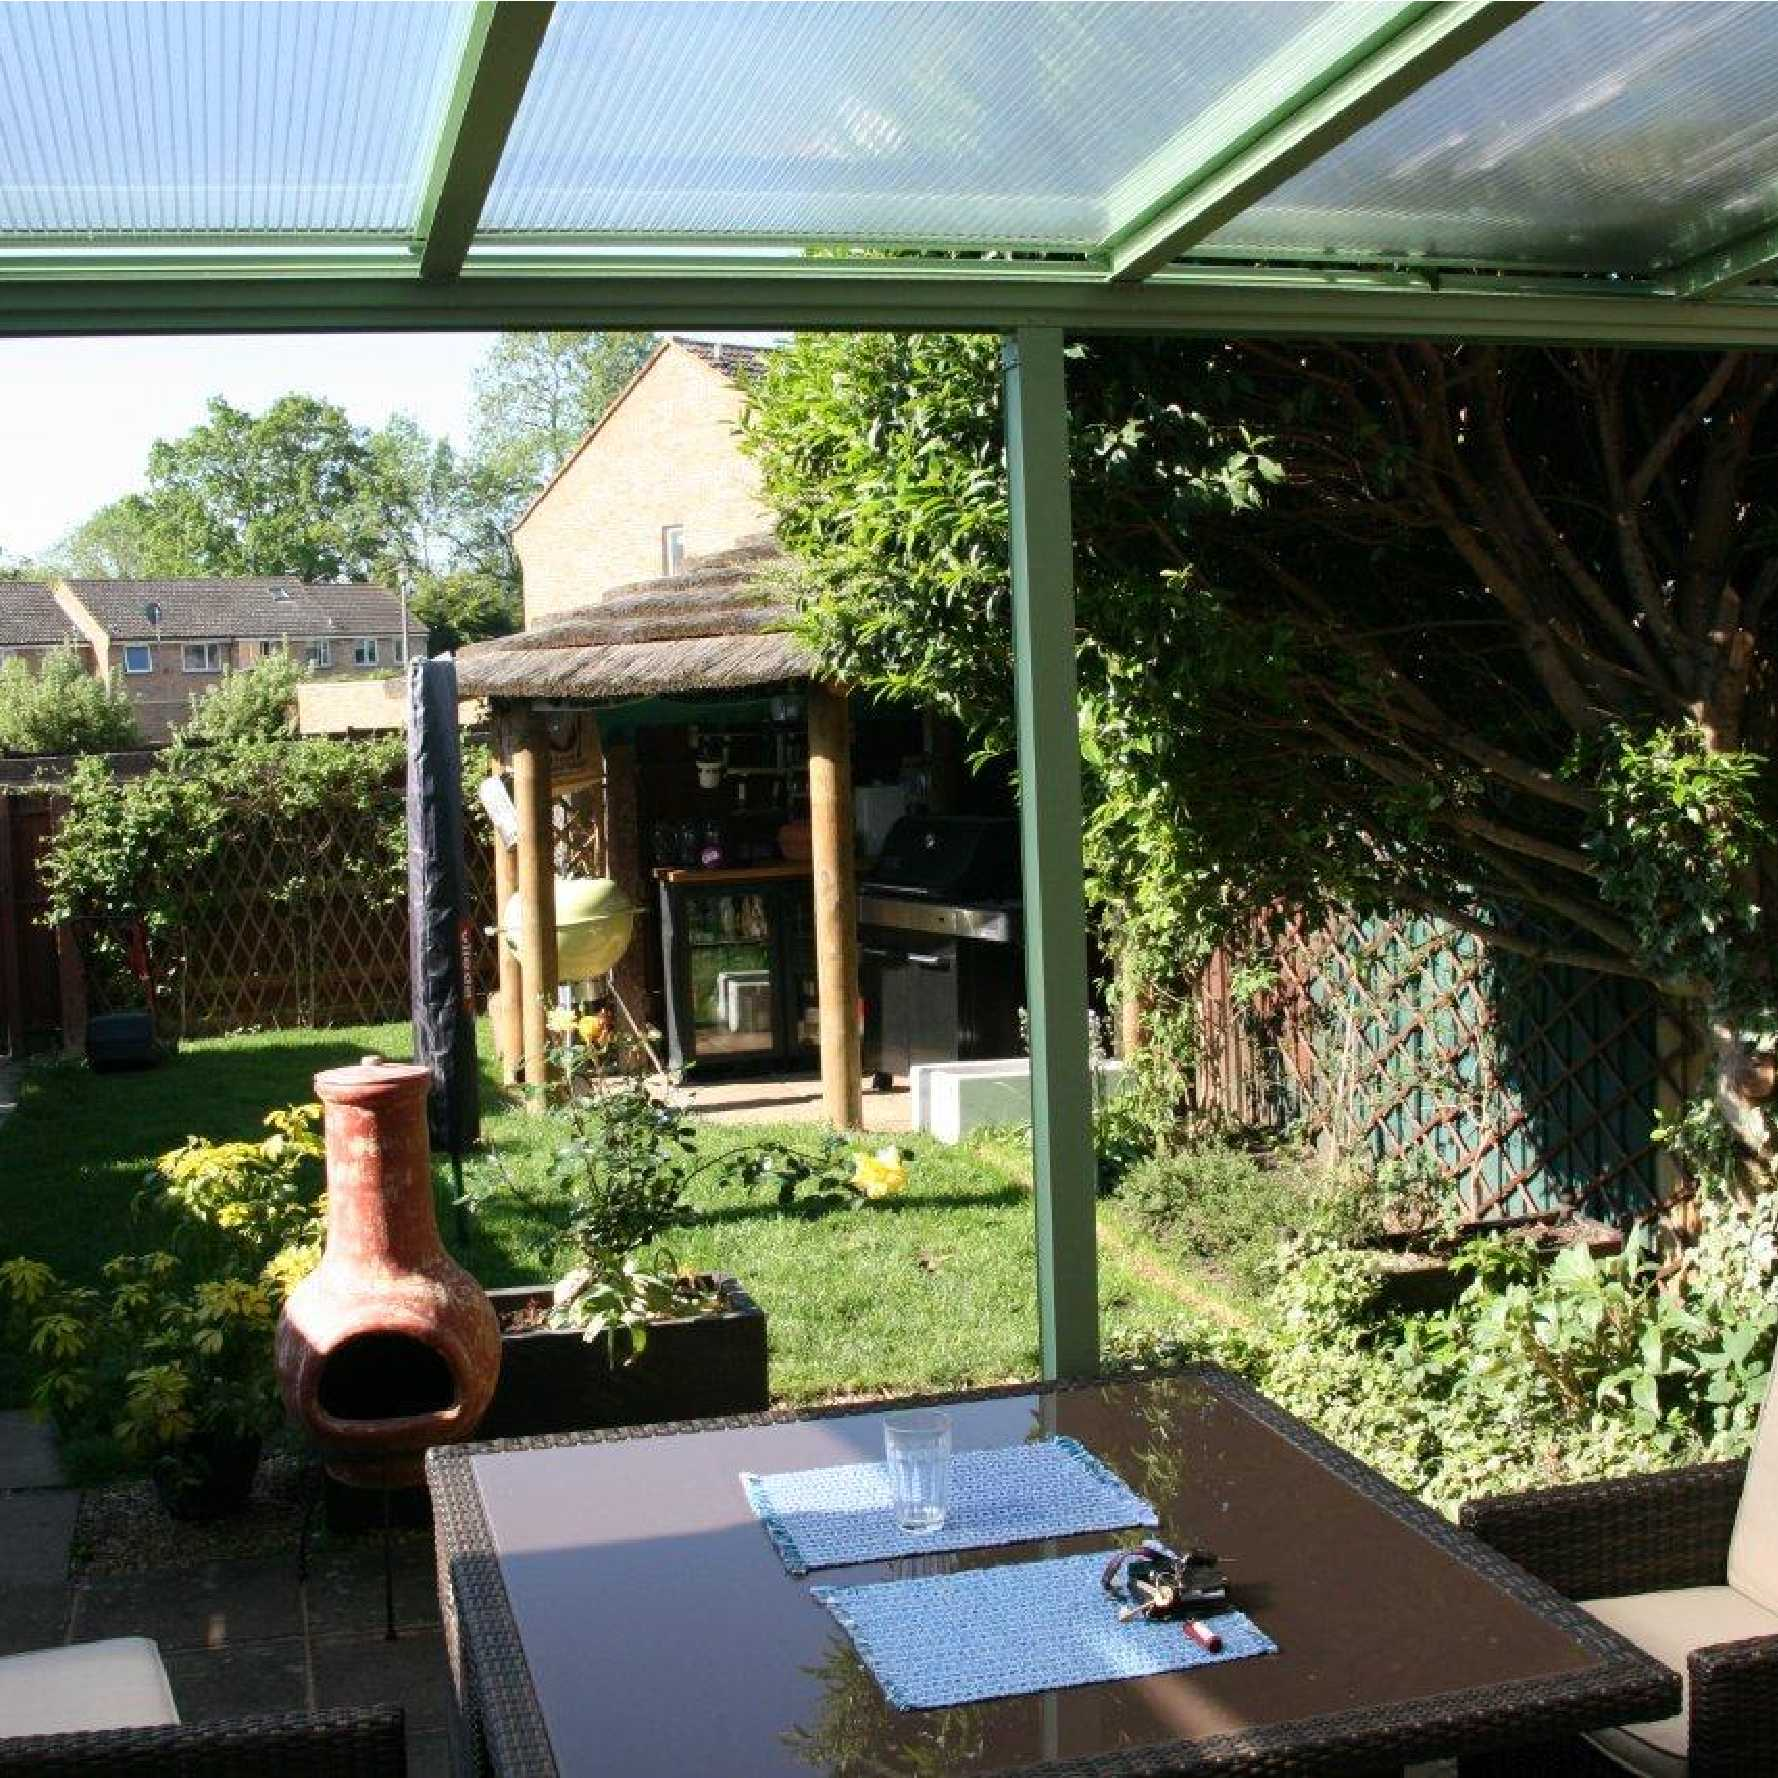 Affordable Omega Smart Lean-To Canopy with 16mm Polycarbonate Glazing - 6.0m (W) x 4.0m (P), (3) Supporting Posts